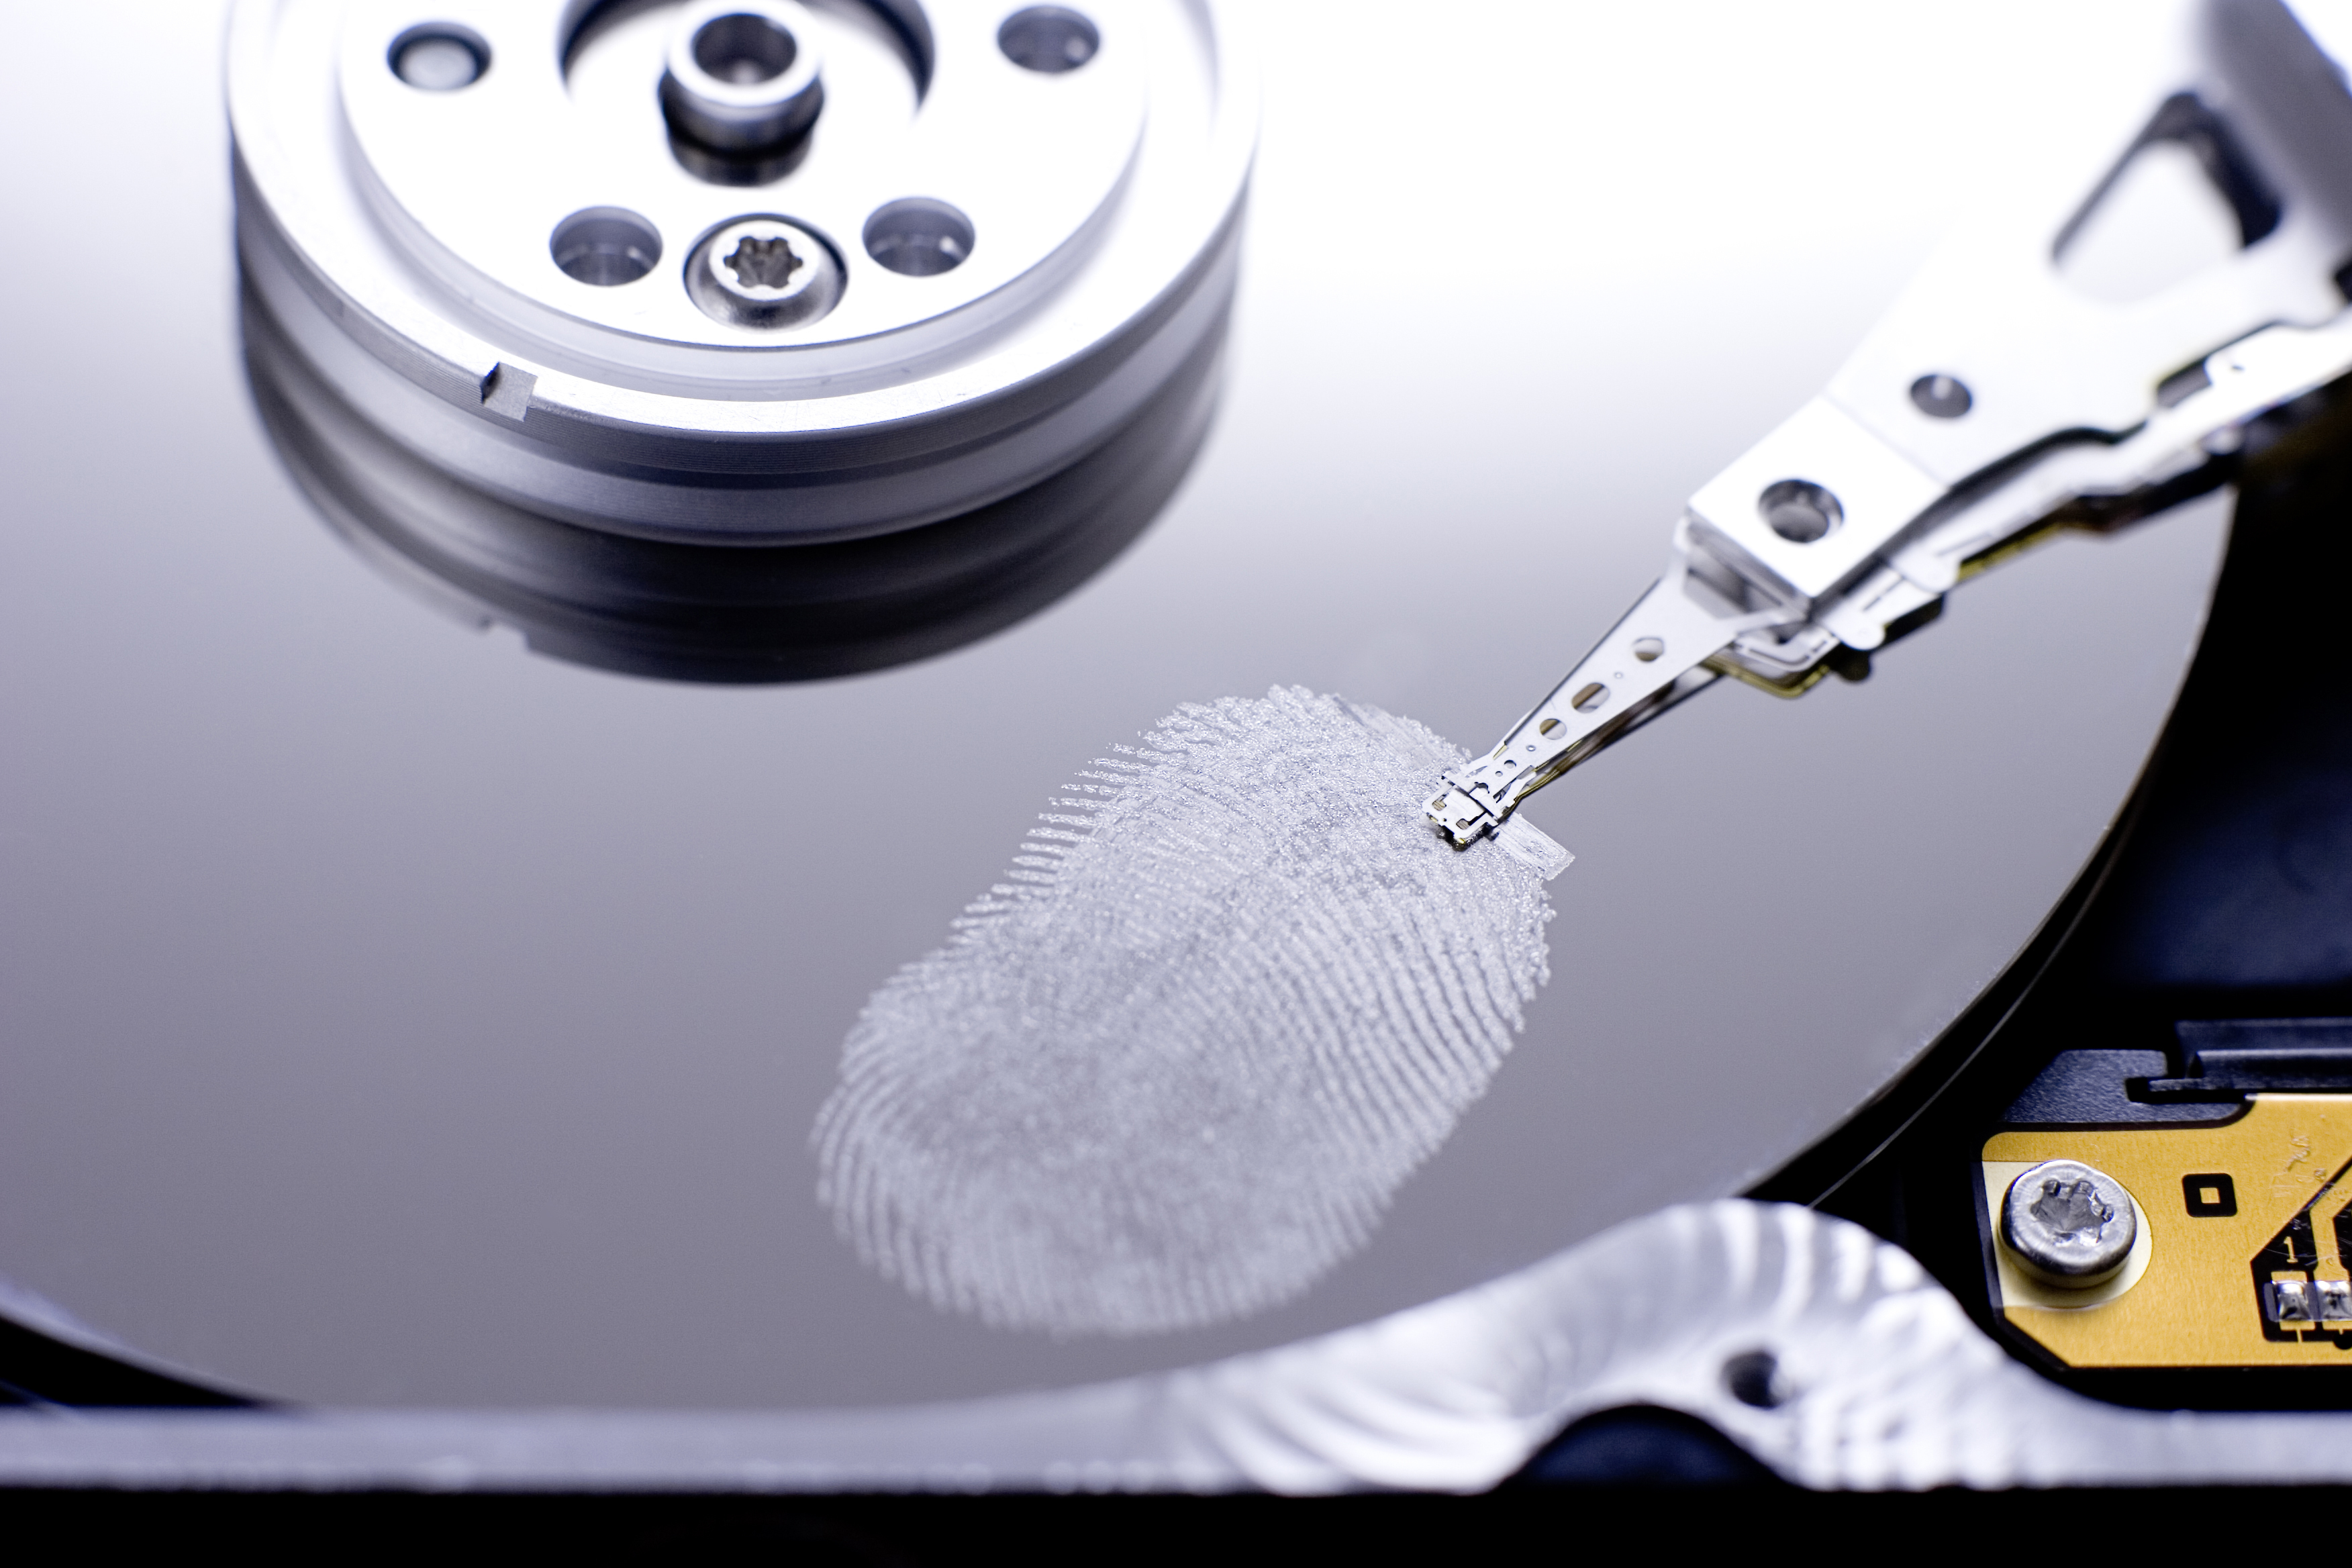 Monmouth County Computer Forensics